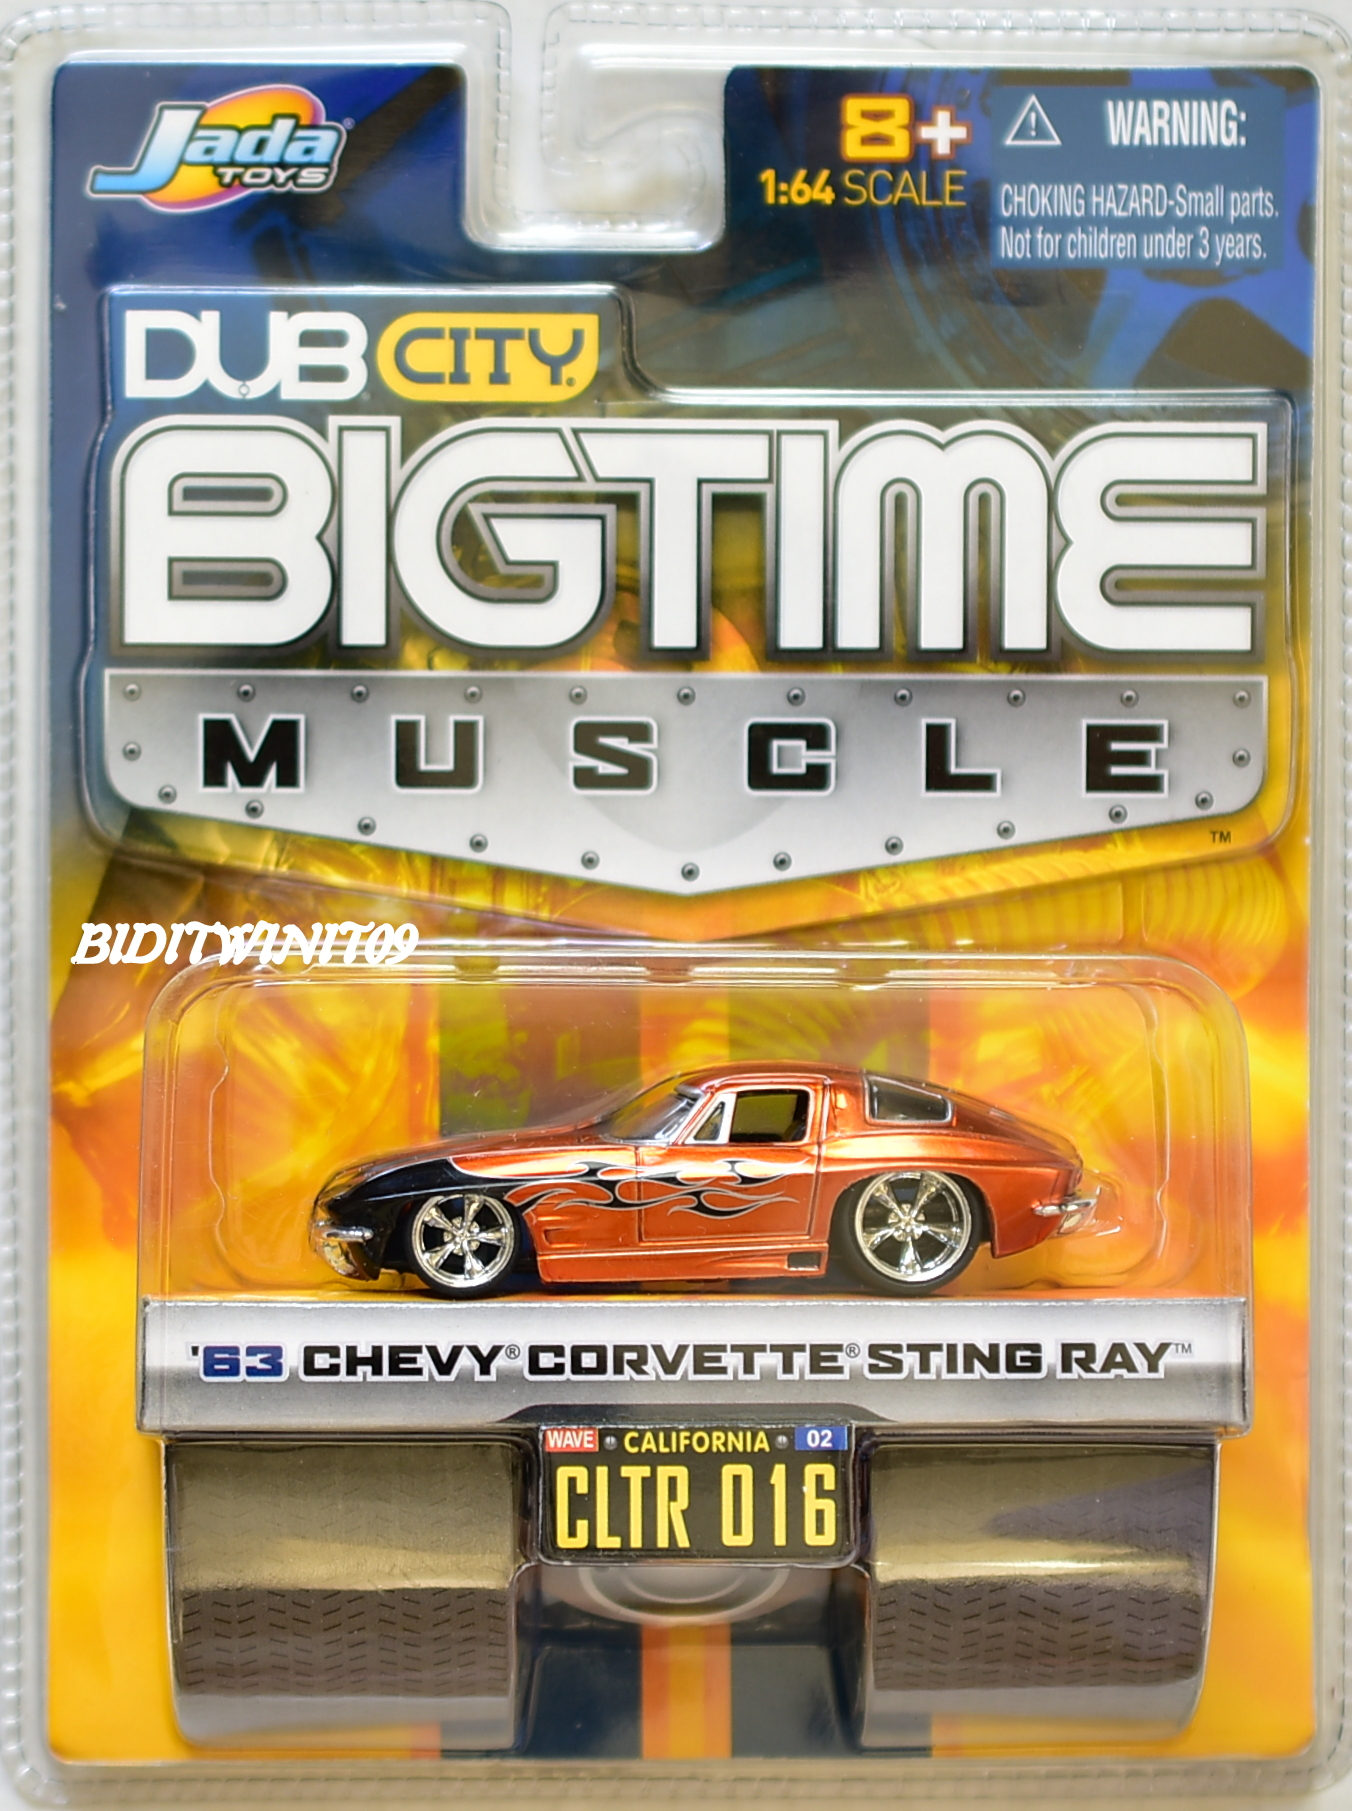 JADA TOYS DUB CITY BIGTIME MUSCLE '63 CHEVY CORVETTE STING RAY CLTR 016